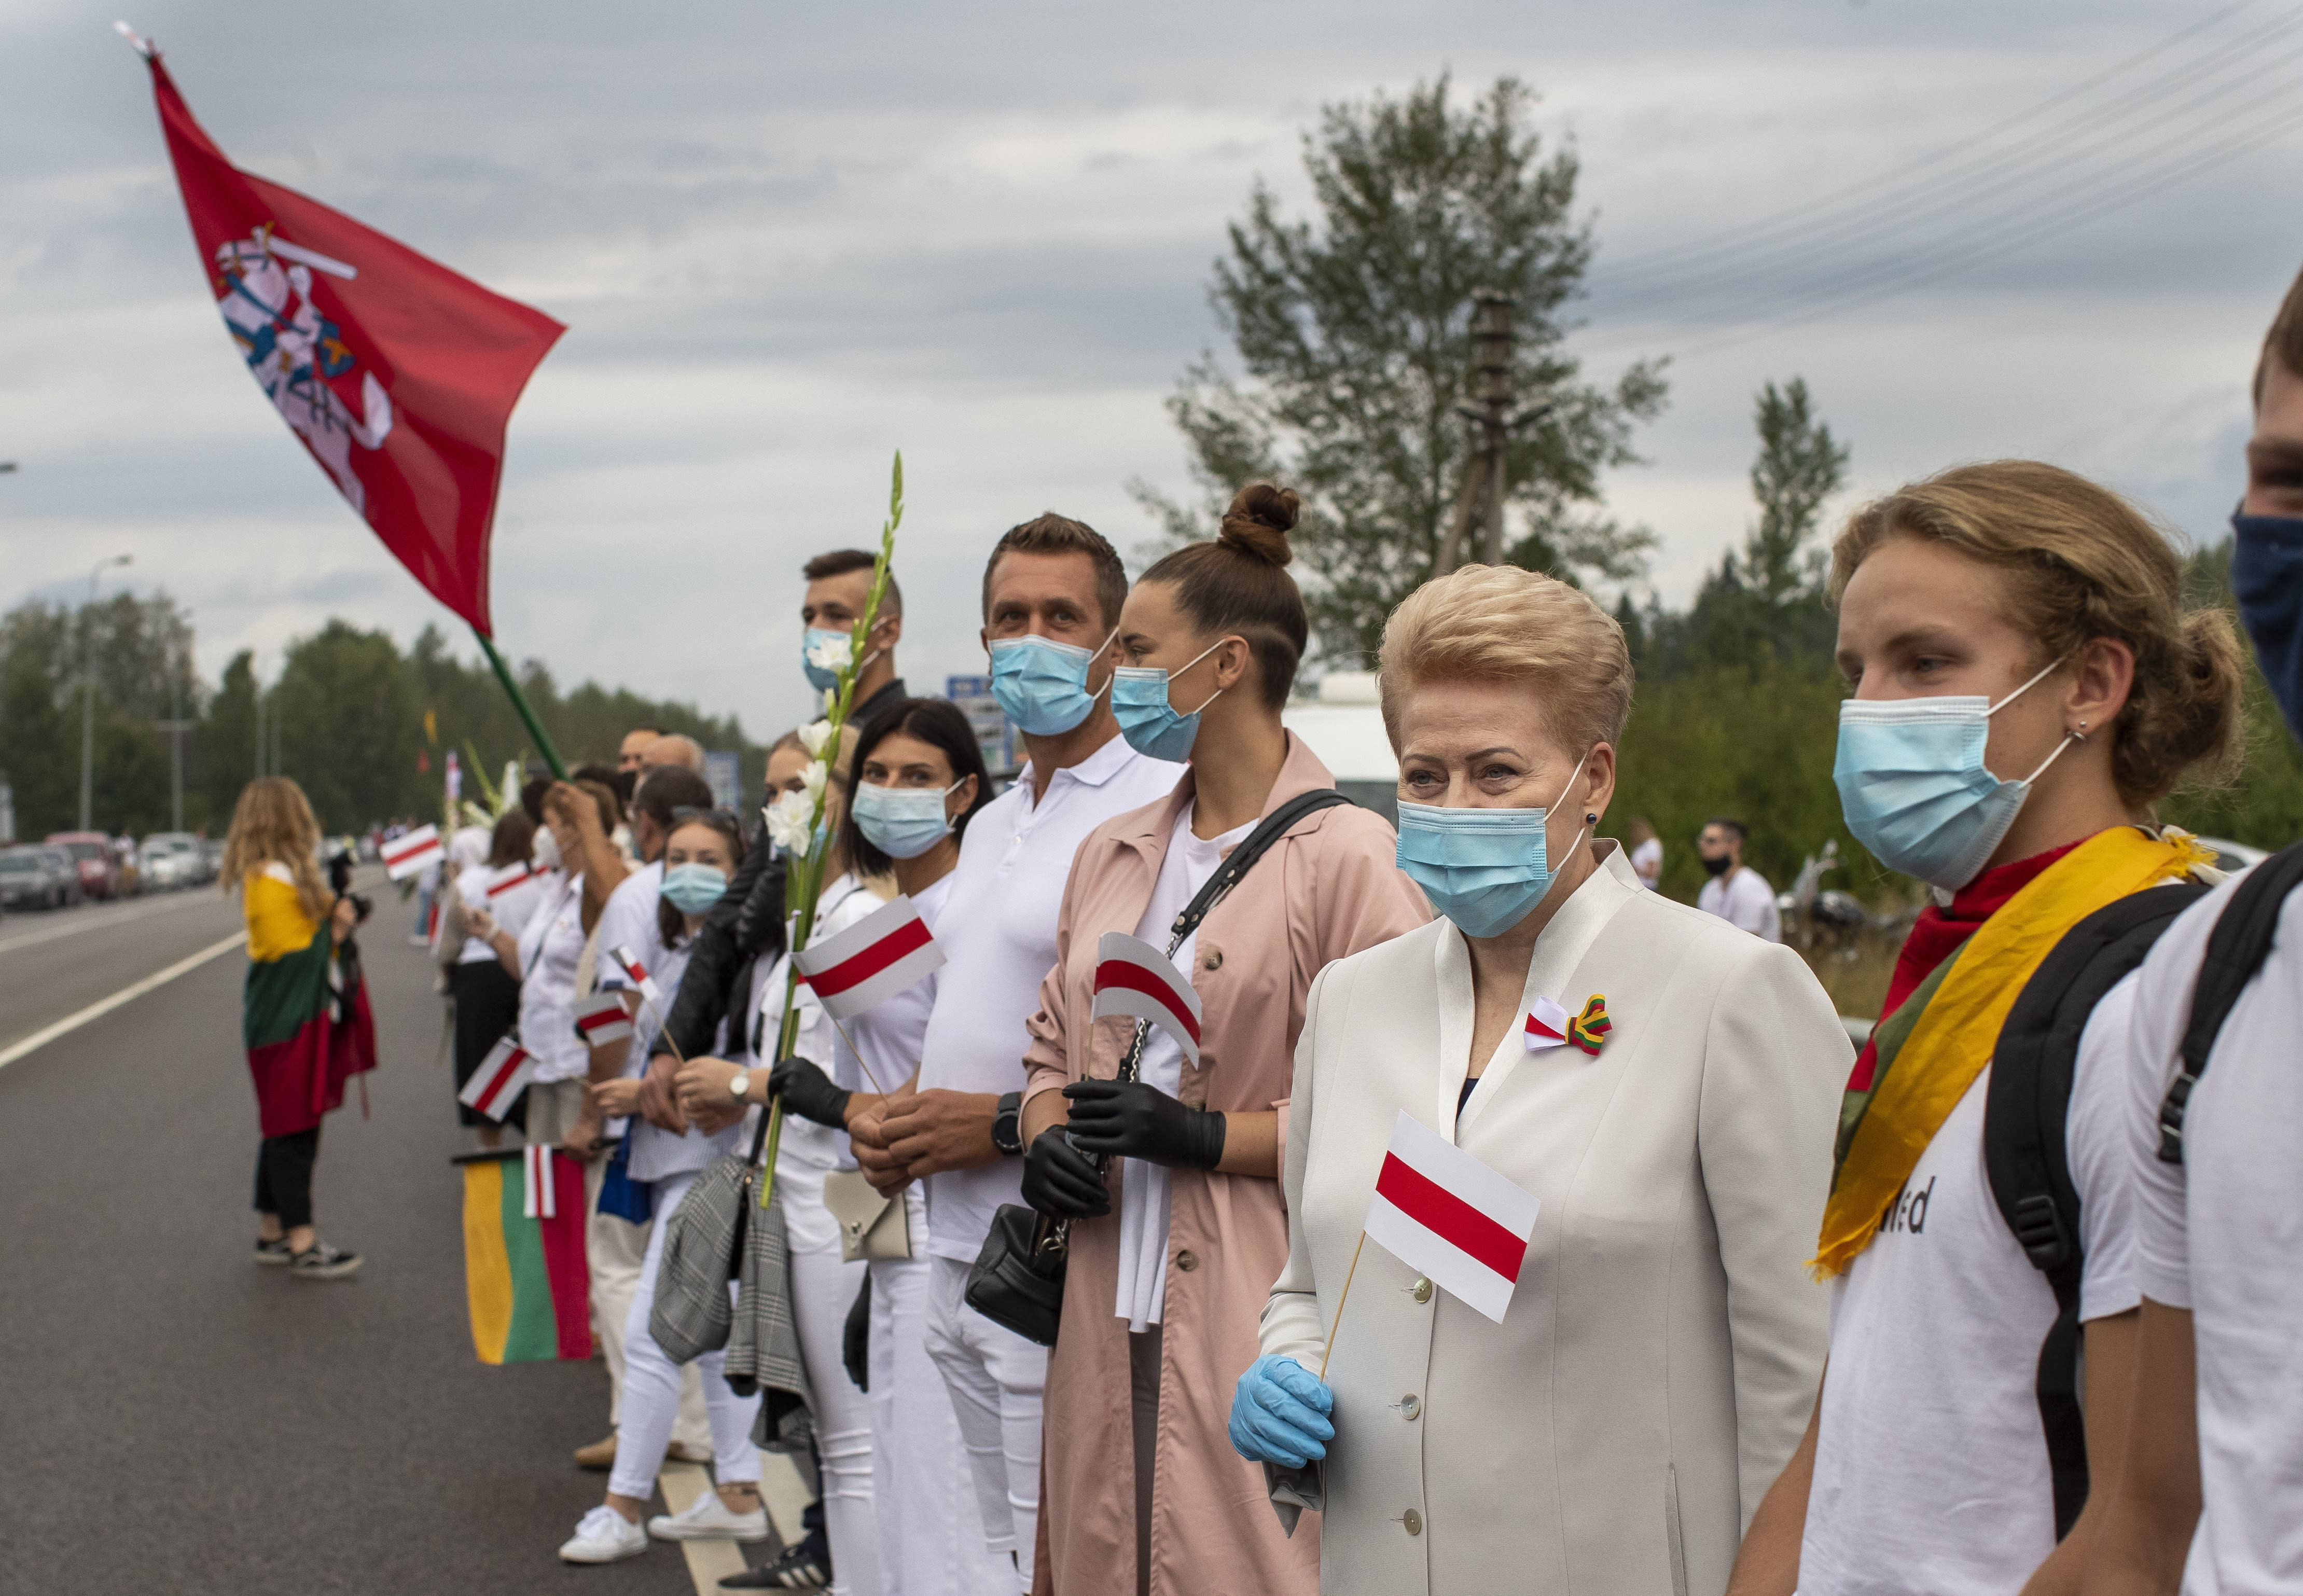 "Former Lithuanian President Dalia Grybauskaite, second from right, and other supporters of Belarus opposition participate in a ""Freedom Way"", a human chain of about 50,000 strong from Vilnius to the Belarusian border, during a protest near Medininkai, Lithuanian-Belarusian border crossing east of Vilnius, Lithuania, Sunday, Aug. 23, 2020. In Aug. 23, 1989, around 2 million Lithuanians, Latvians, and Estonians joined forces in a living 600 km (375 mile) long human chain Baltic Way, thus demonstrating their desire to be free. Now, Lithuania is expressing solidarity with the people of Belarus, who are fighting for freedom today. (AP Photo/Mindaugas Kulbis)"